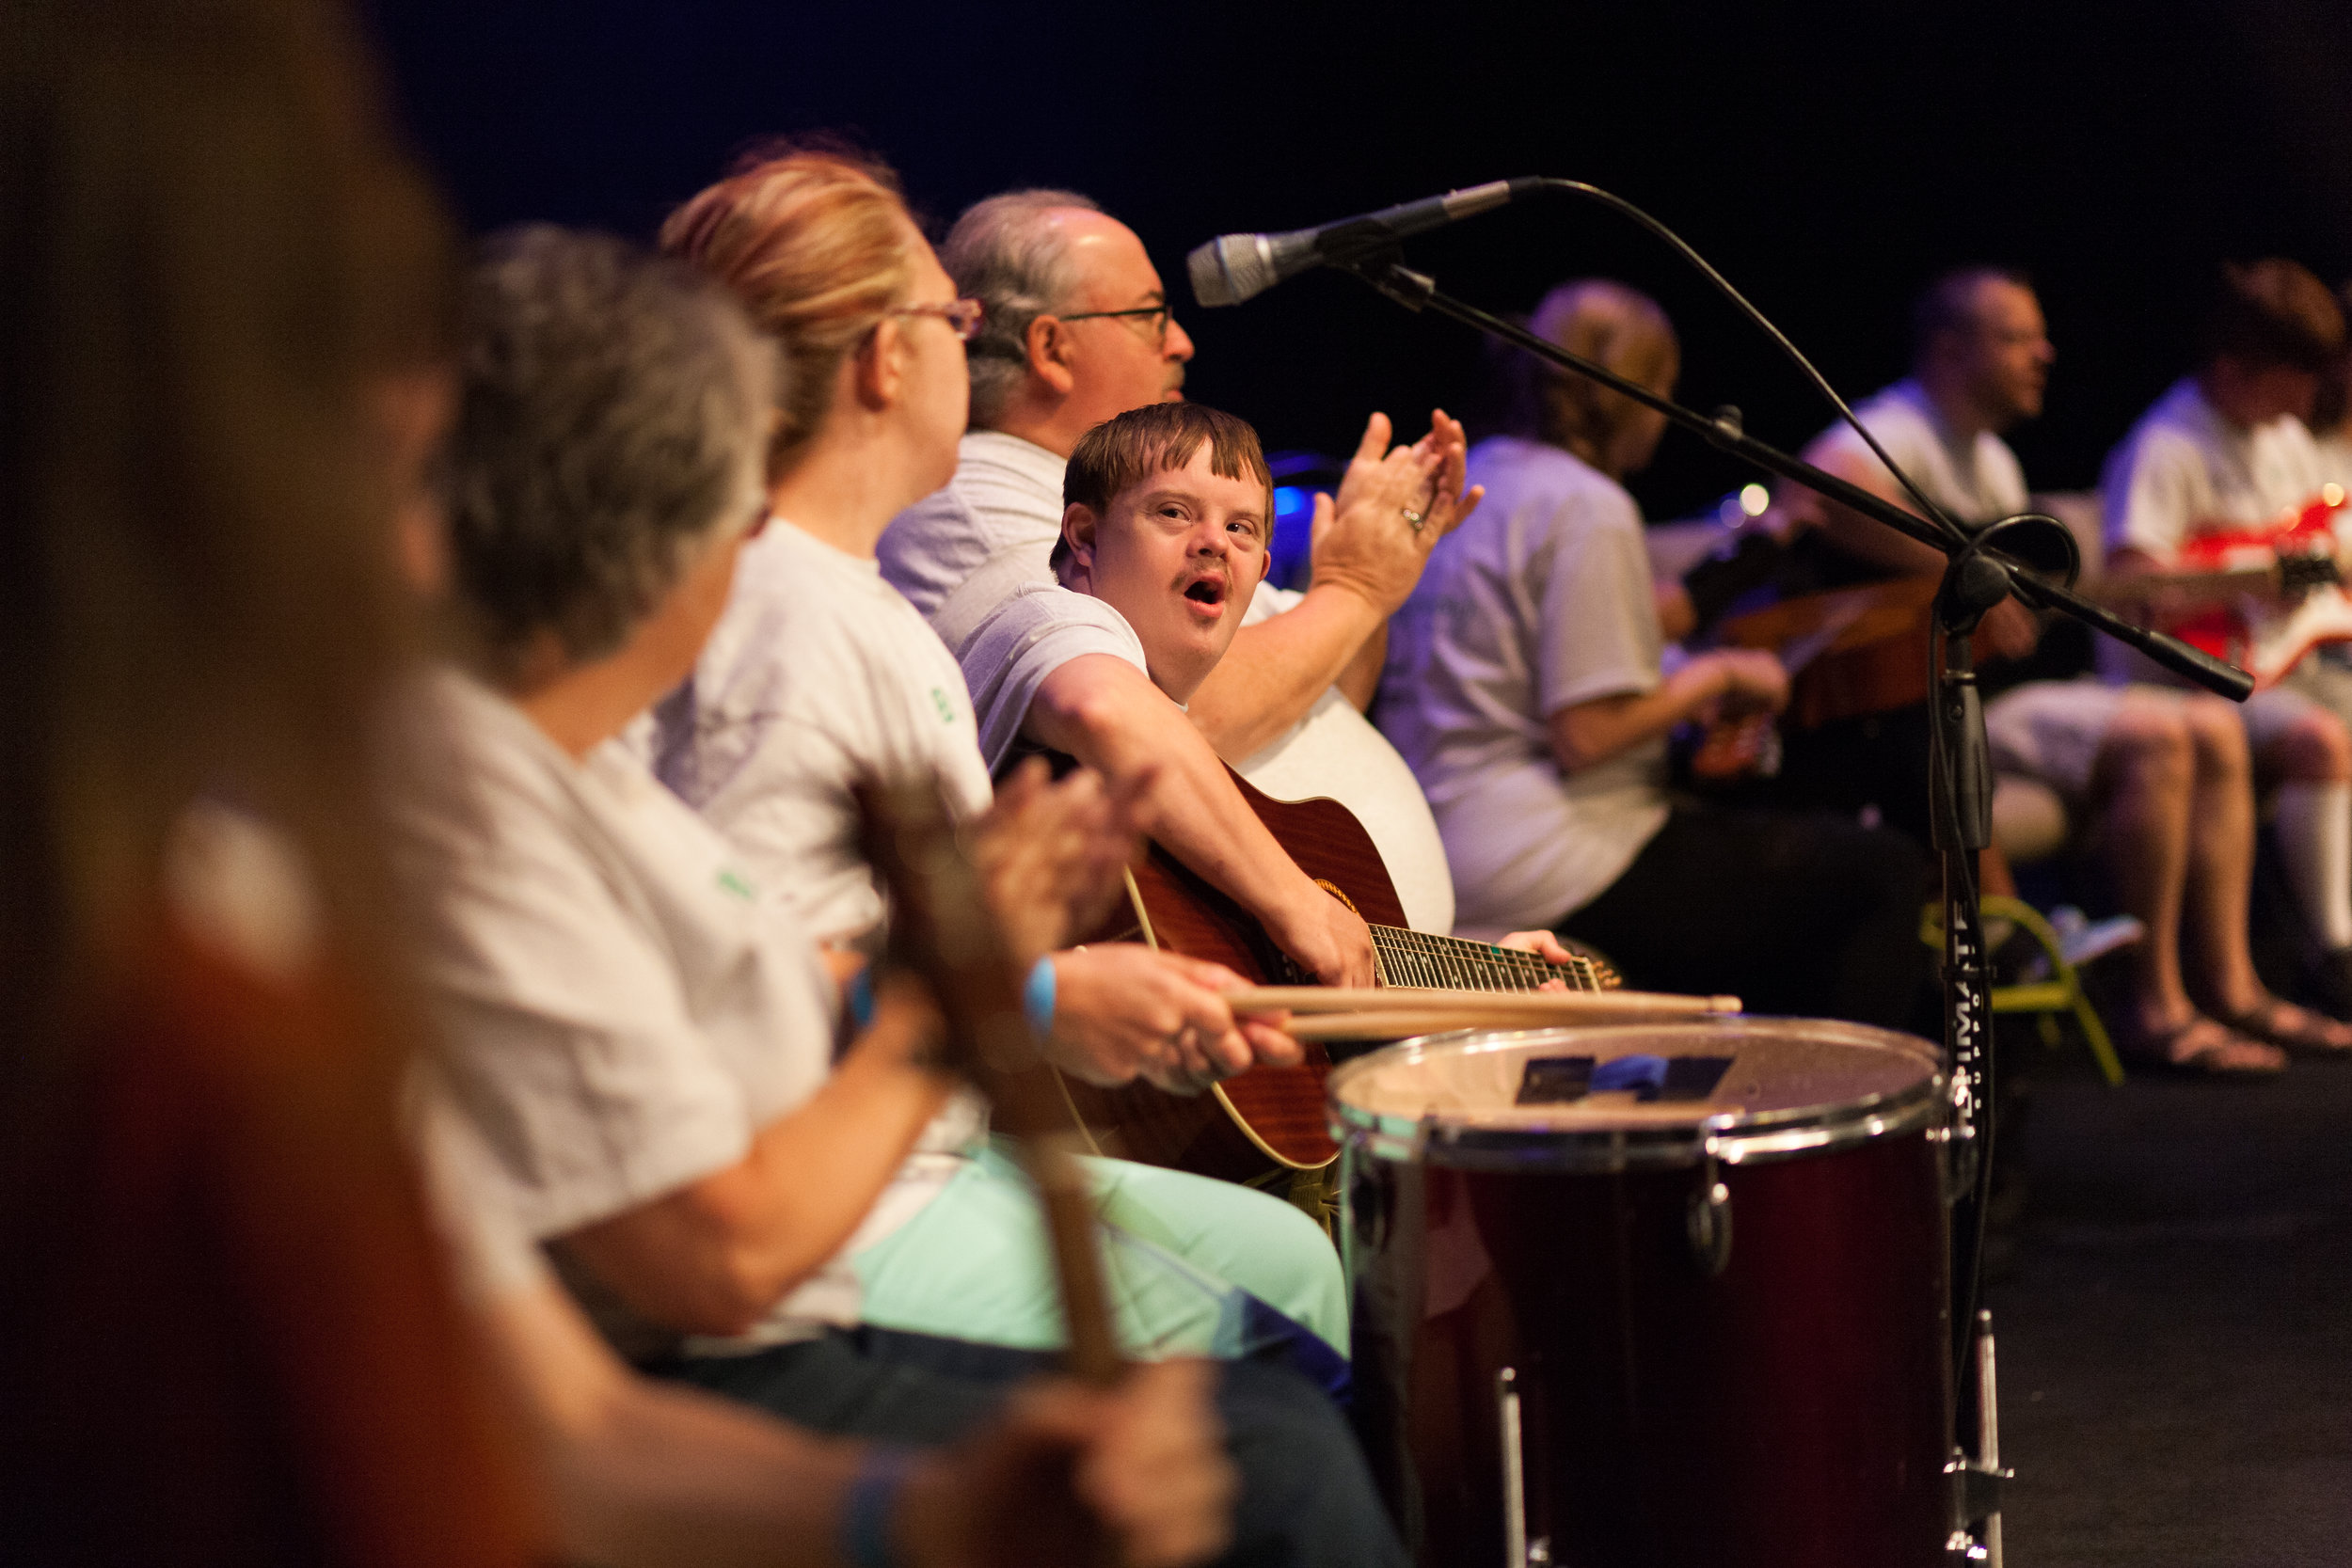 Programs for those who have intellectual and physical disabilities through David's Promise, New Song Music Therapy Camp, and various events. -